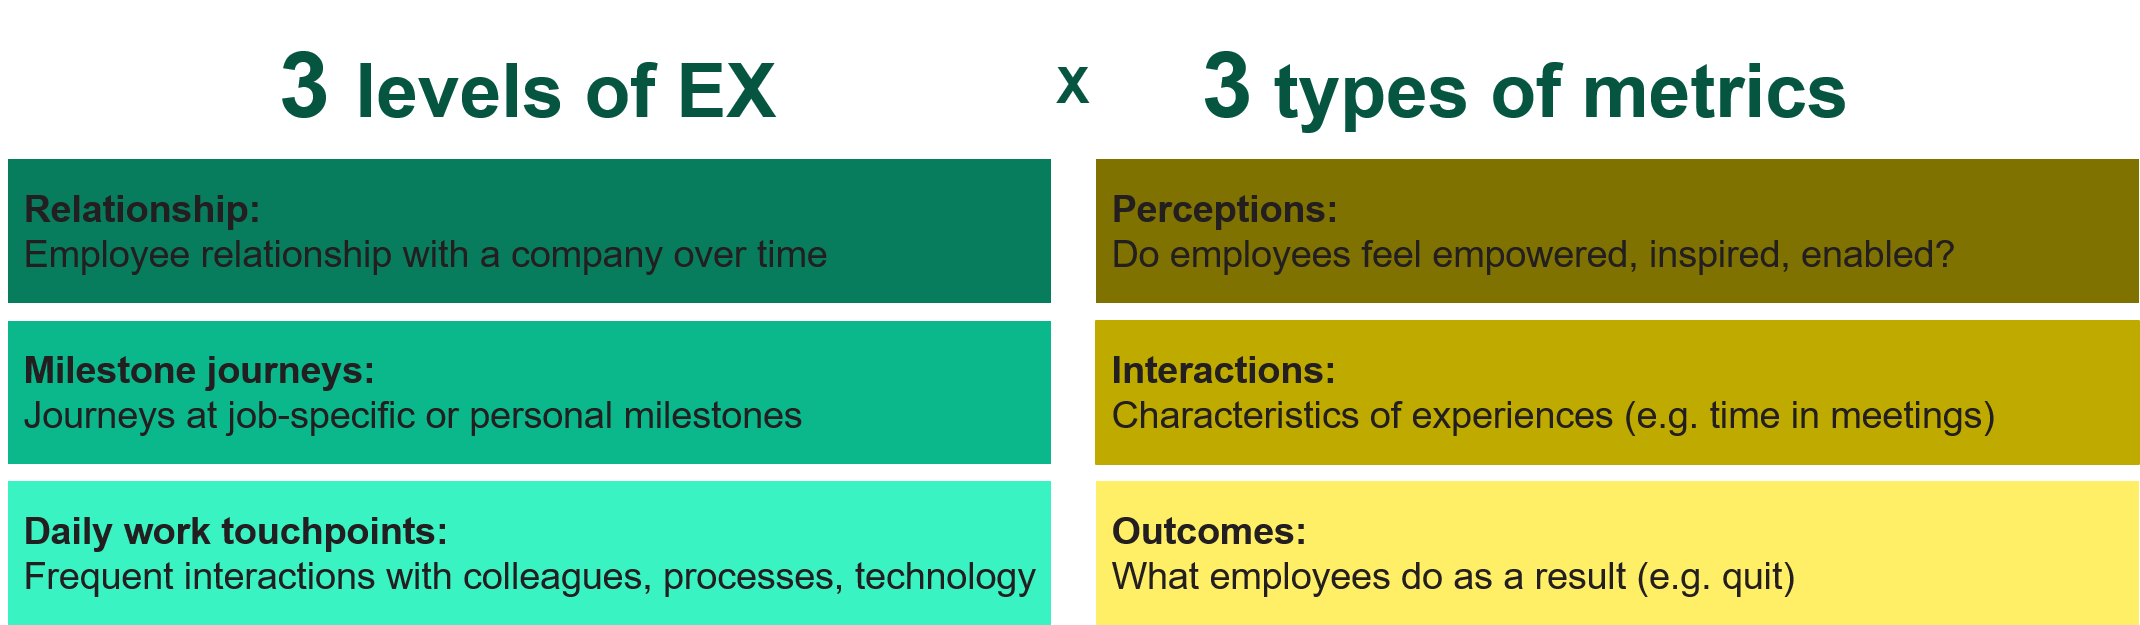 3 levels and 3 types of metrics for employee experience measurement